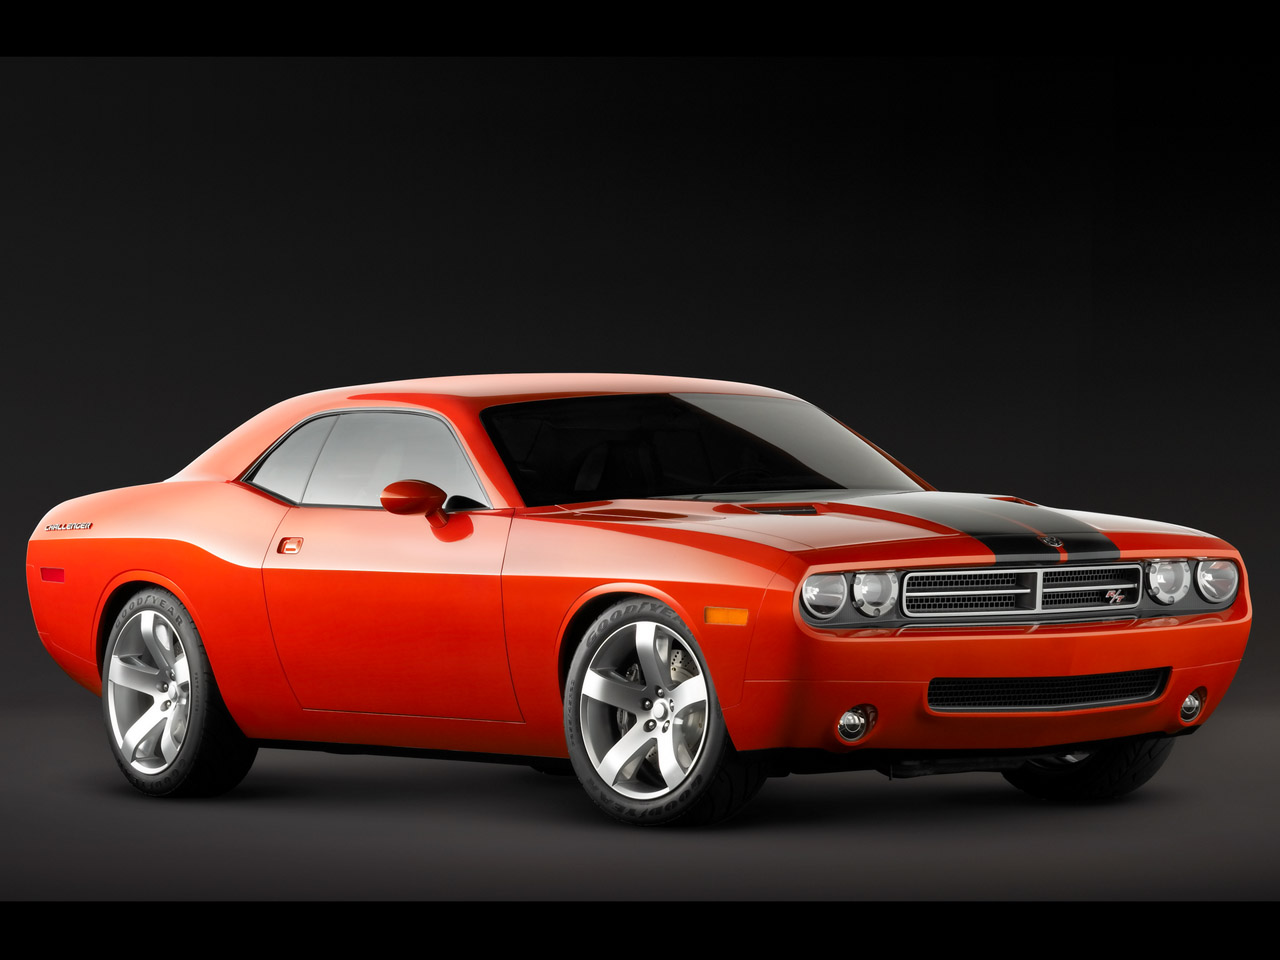 Dodge challenger for sale in temple hills md